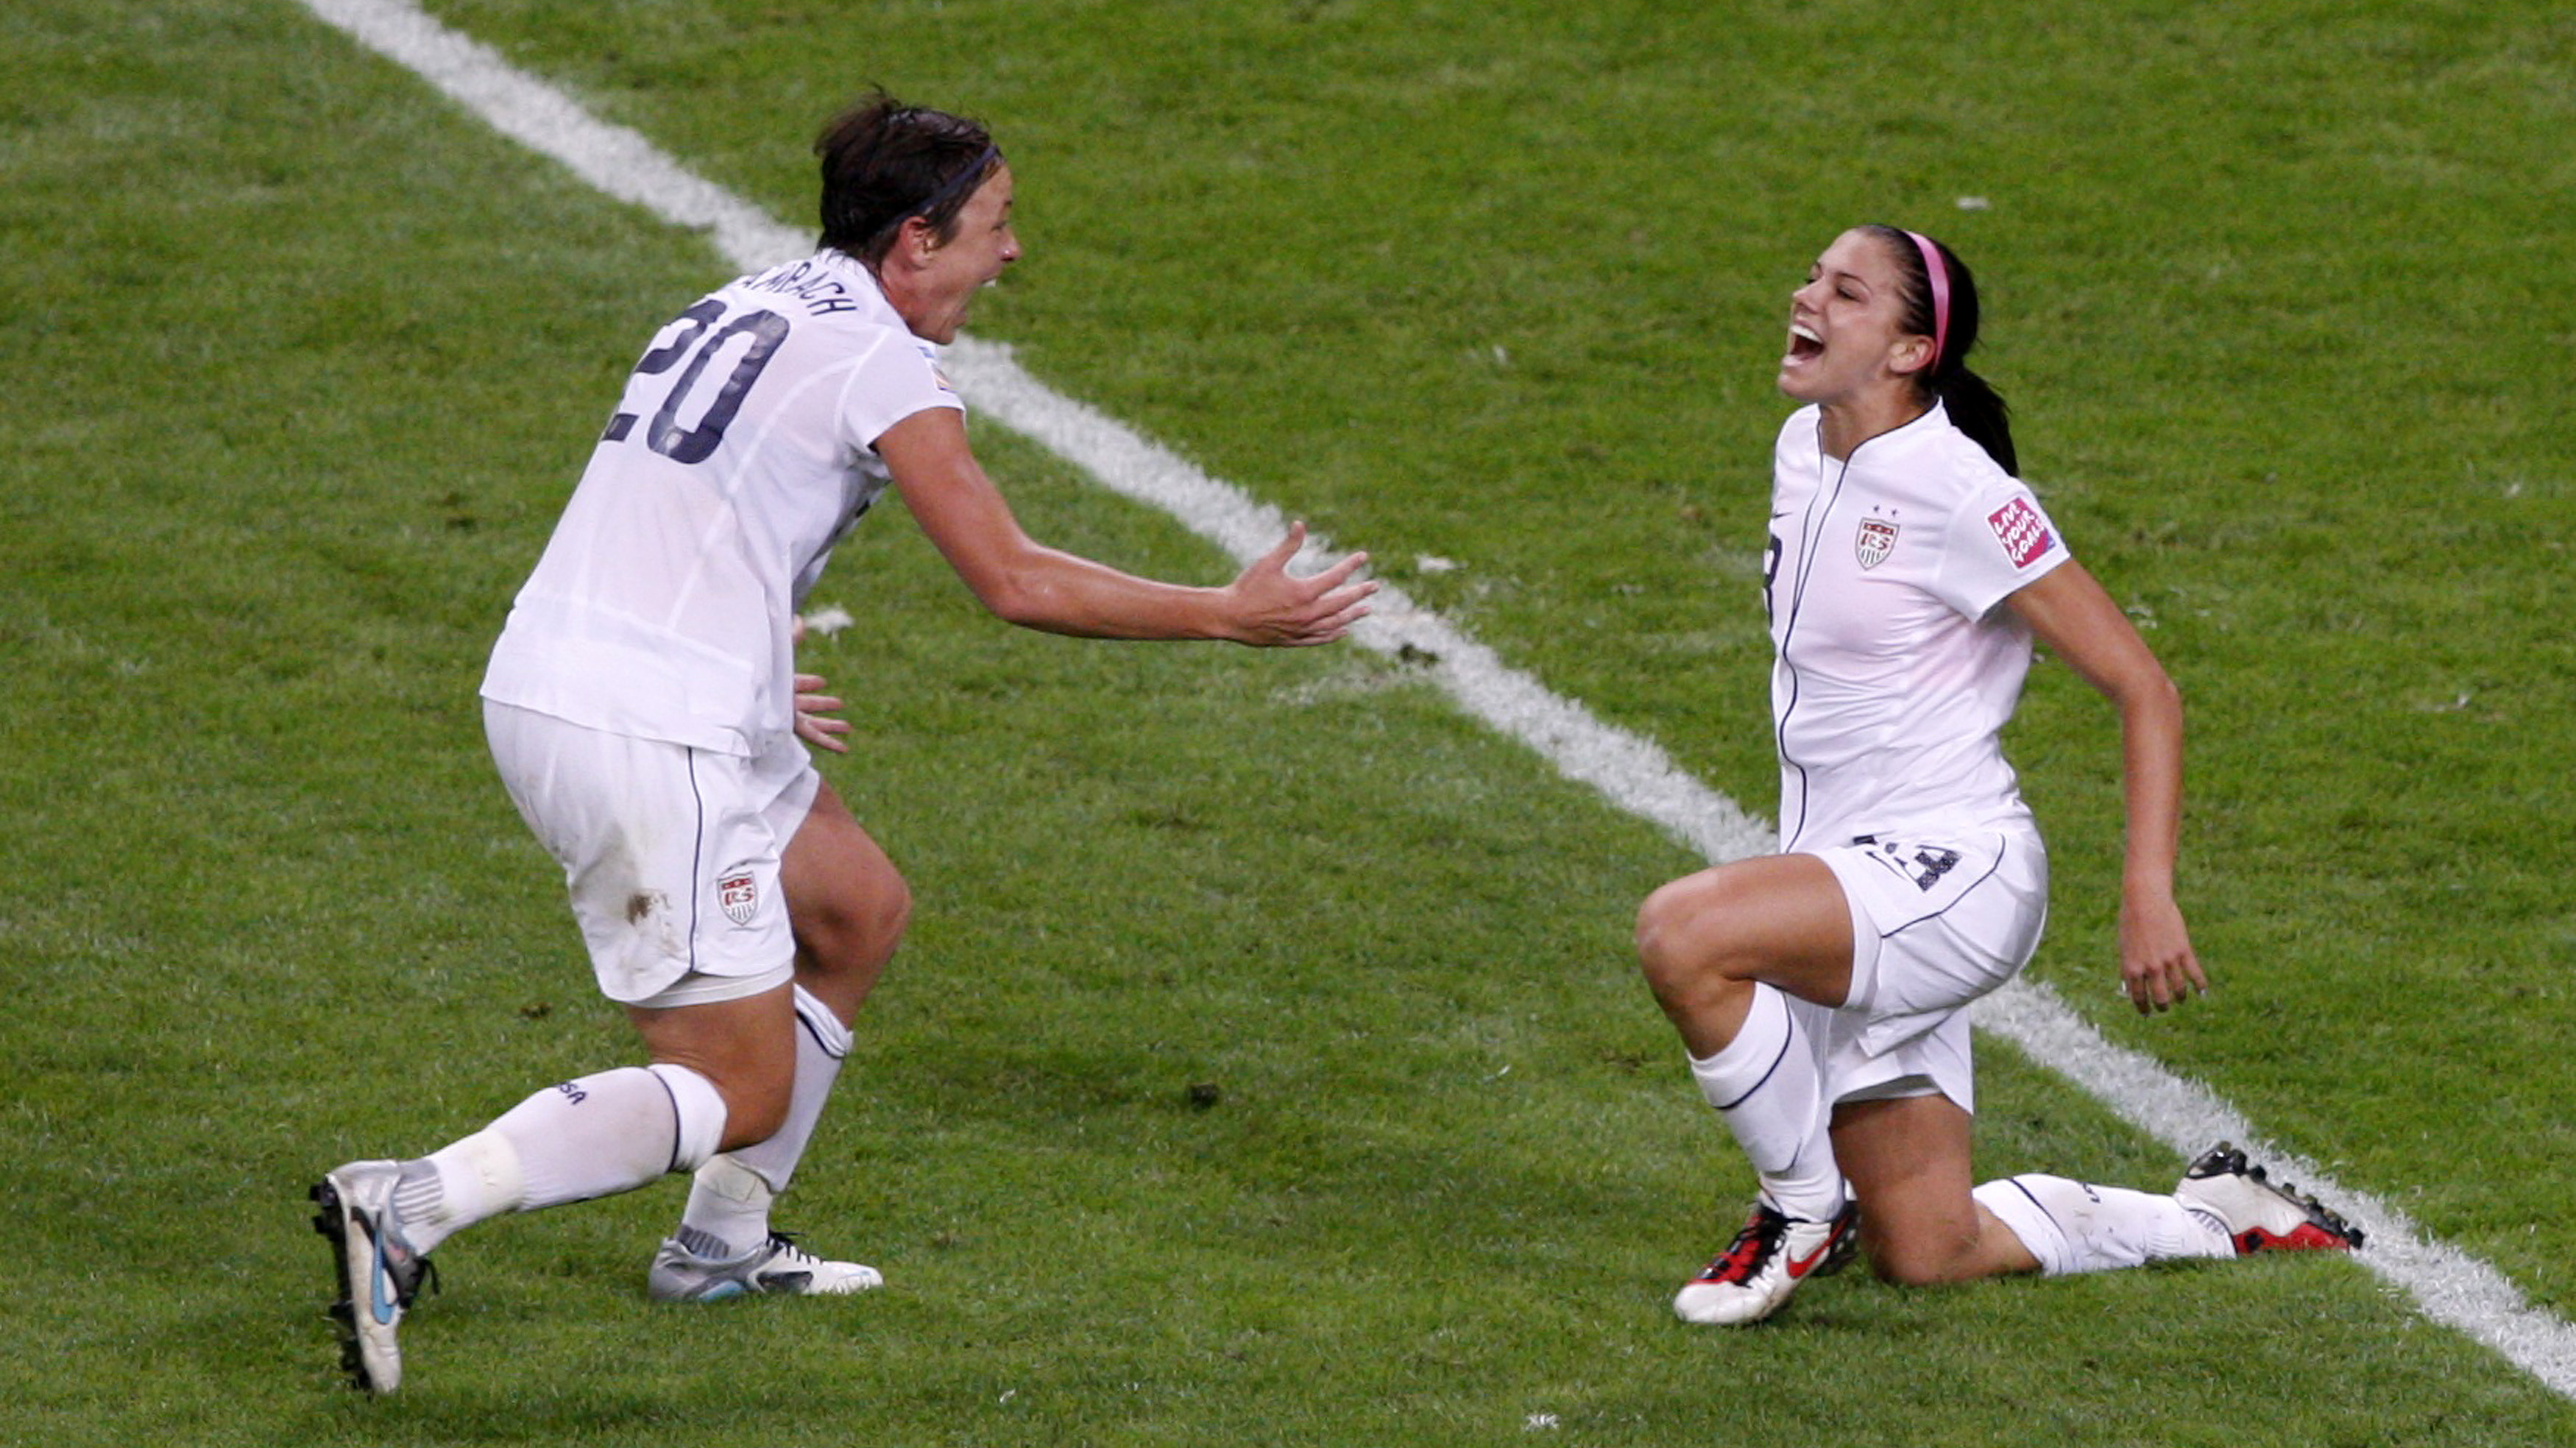 Morgan of the US celebrates a goal against Japan with teammate Wambach during their Women's World Cup final soccer match in Frankfurt